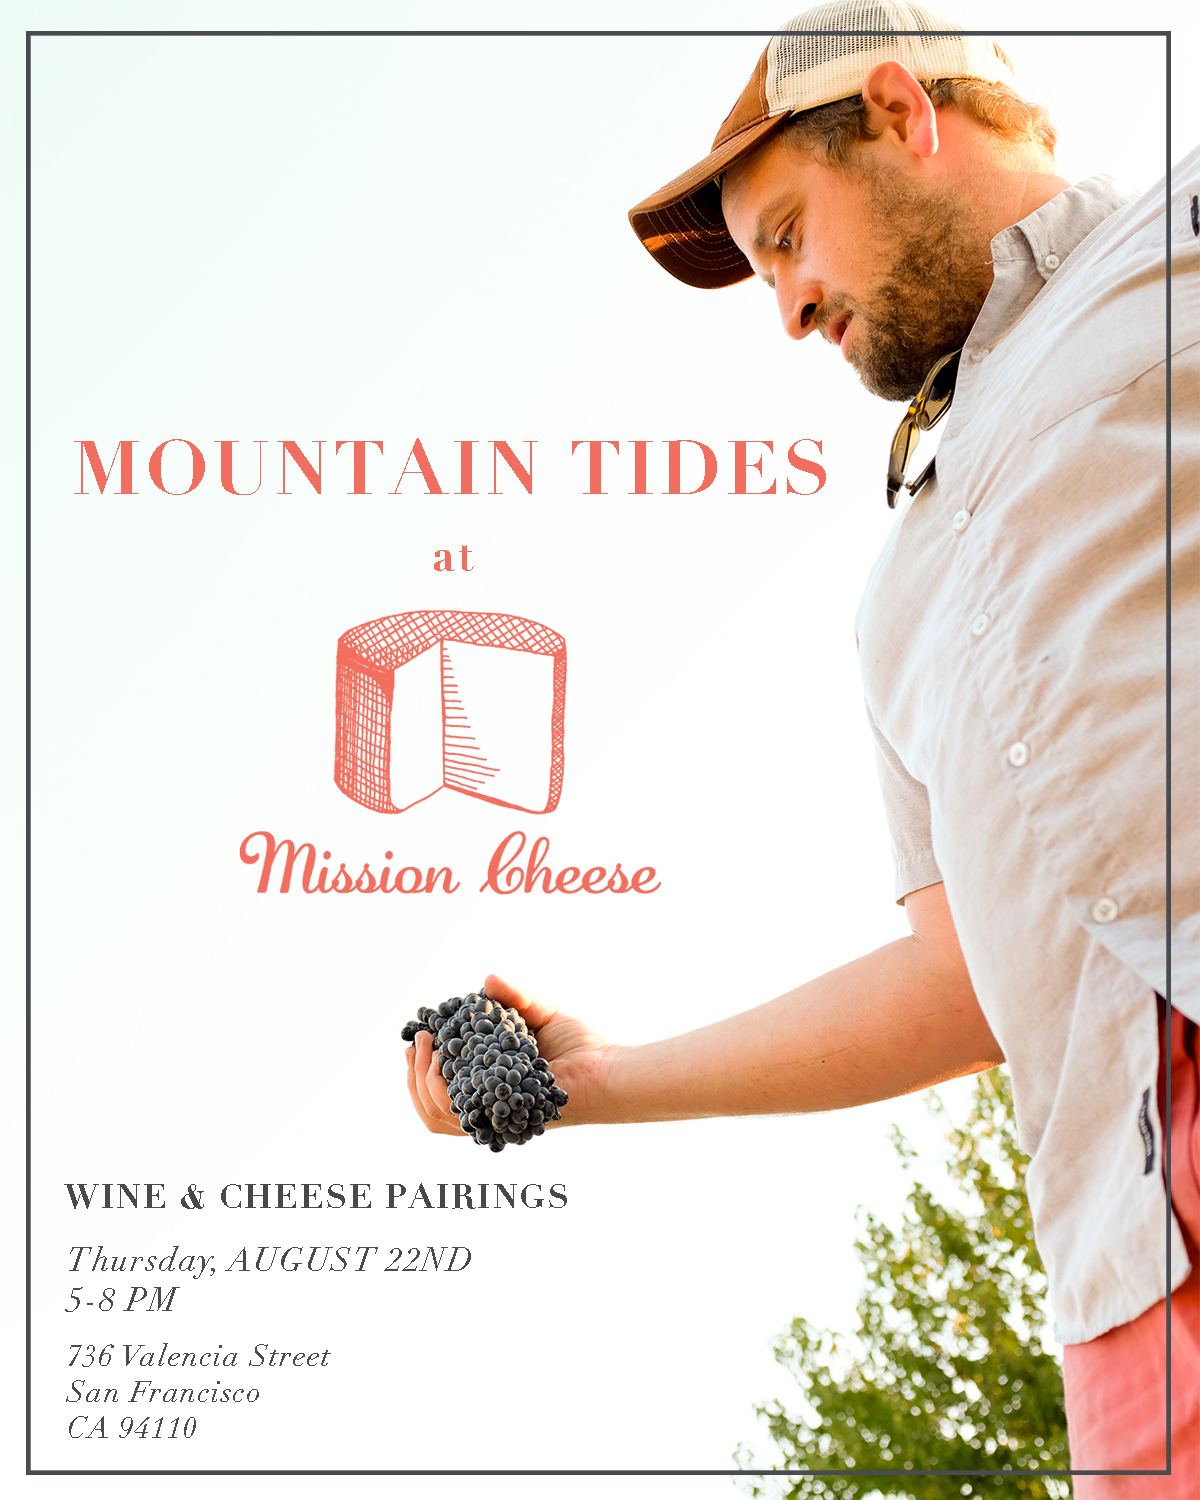 mountain-tides-wine-co-mission-cheese-san-francisco-POST-2.jpg